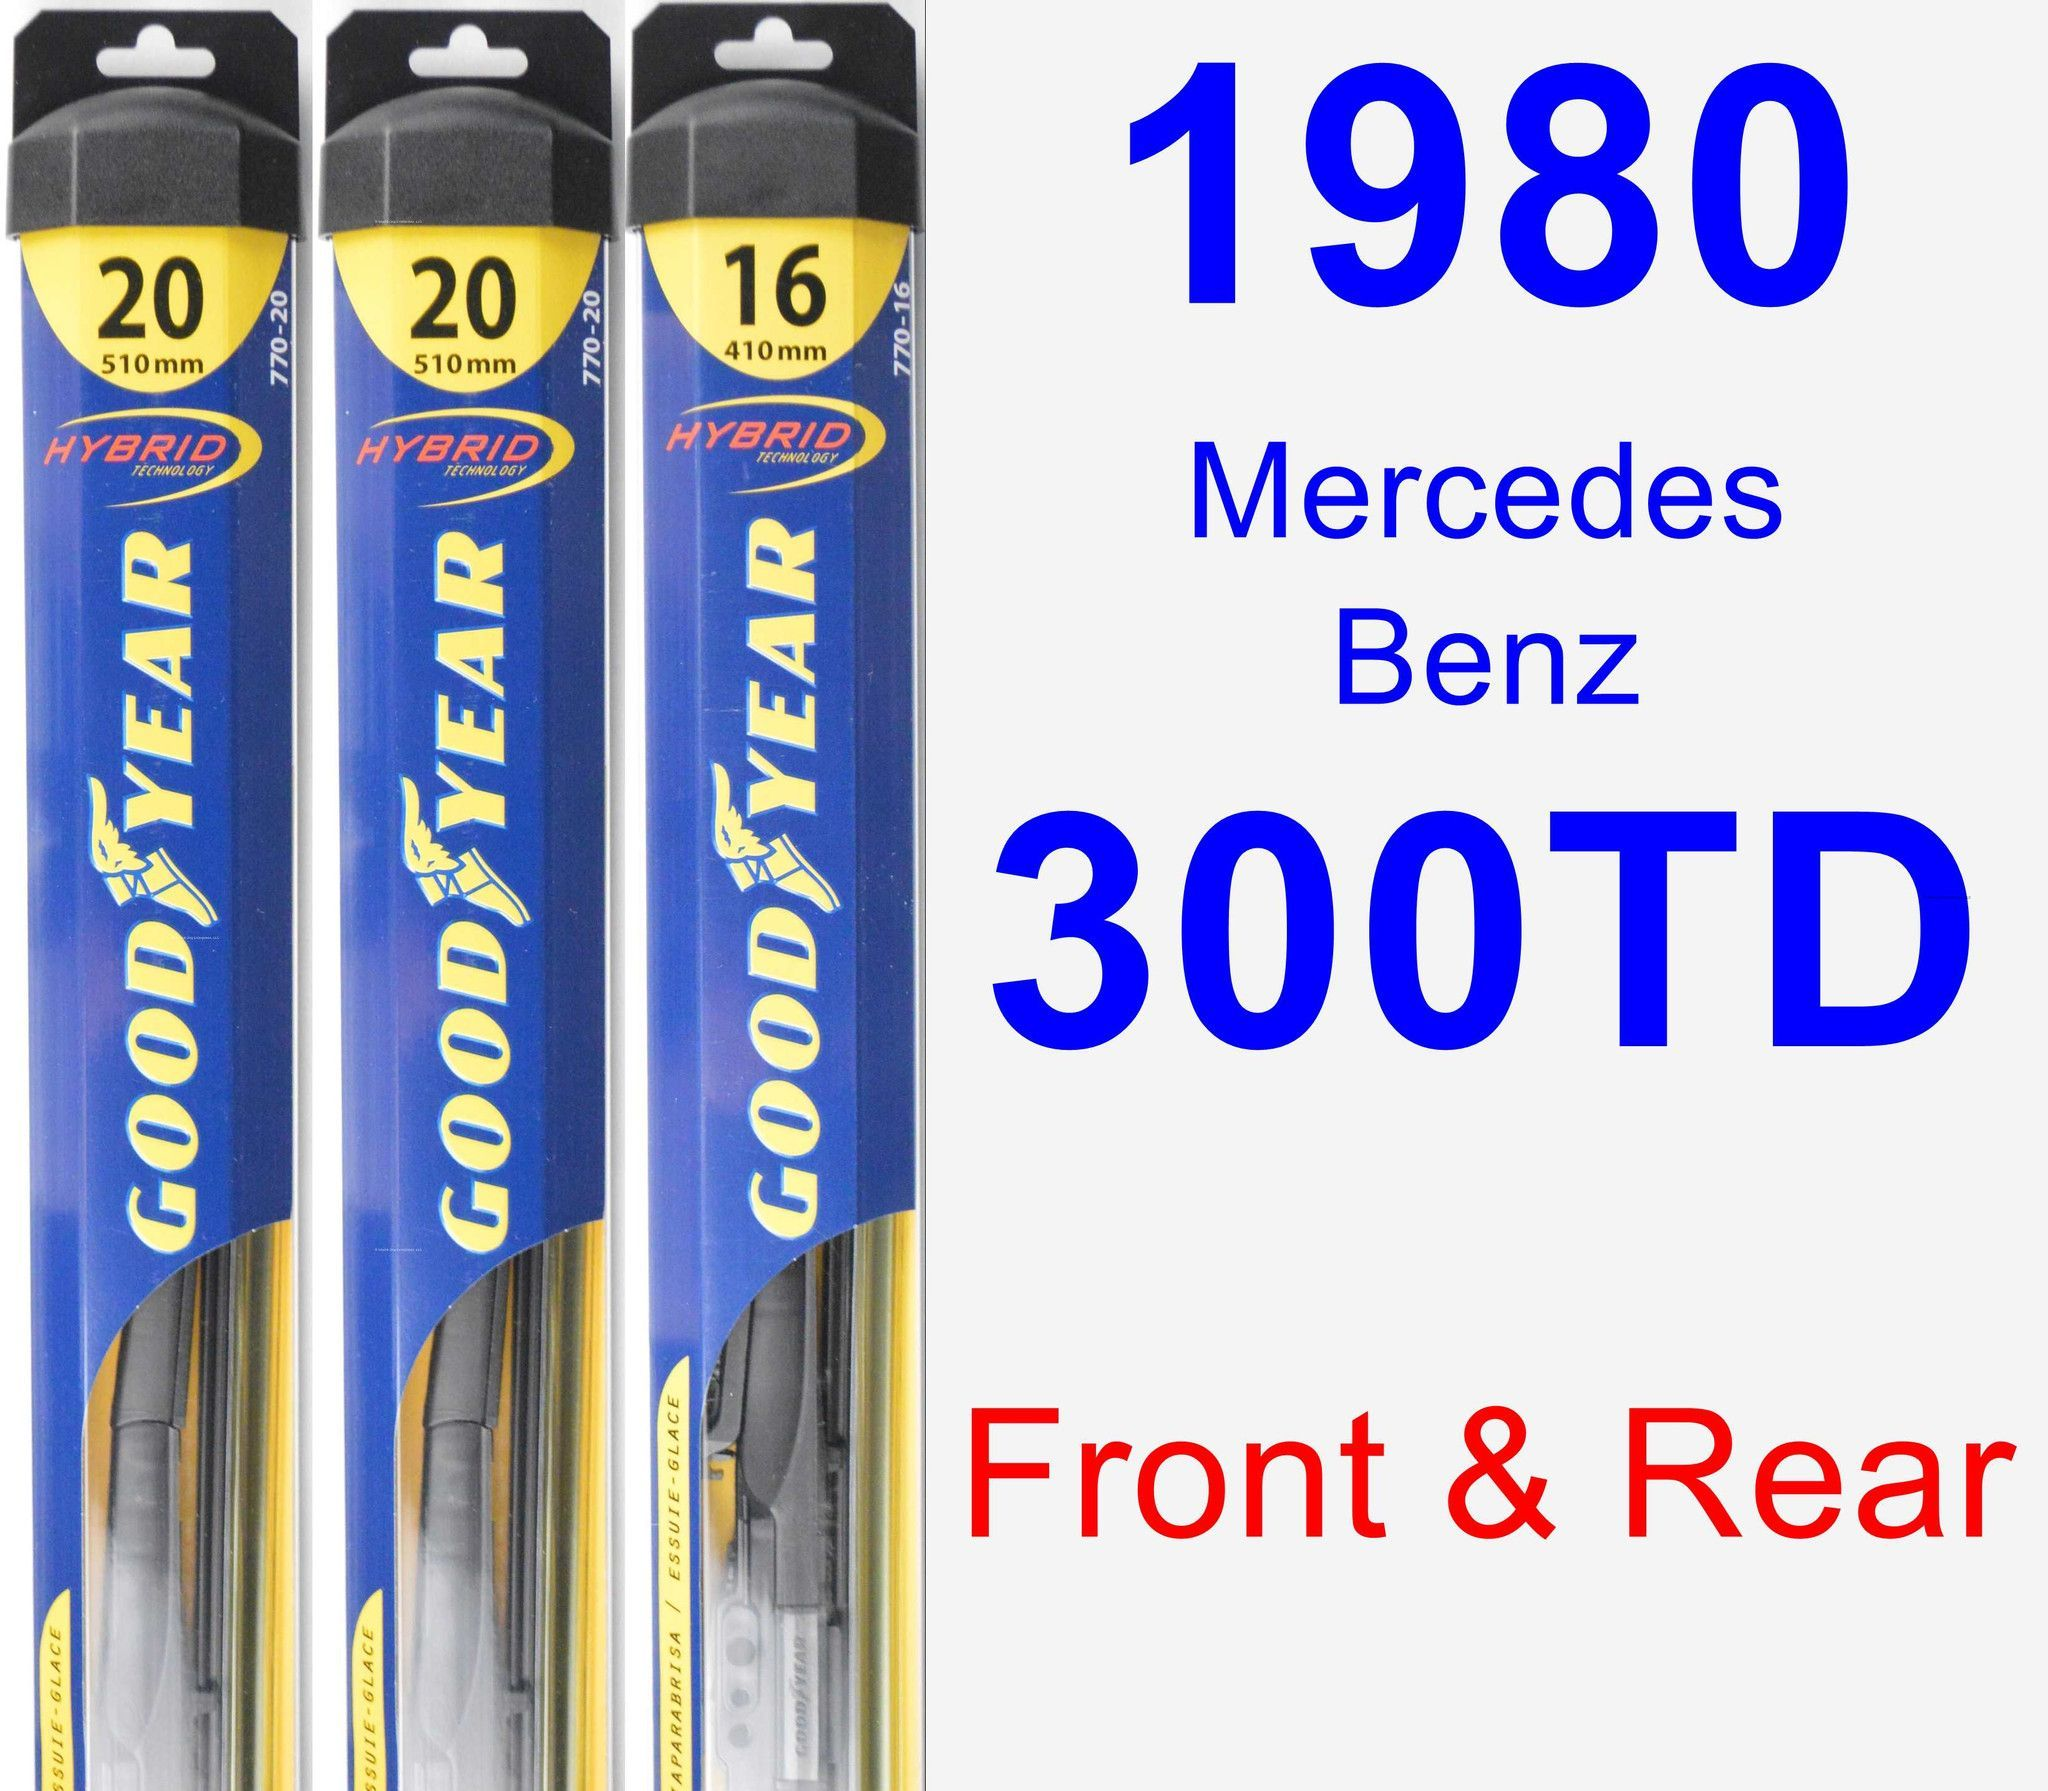 Front & Rear Wiper Blade Pack for 1980 Mercedes-Benz 300TD - Hybrid